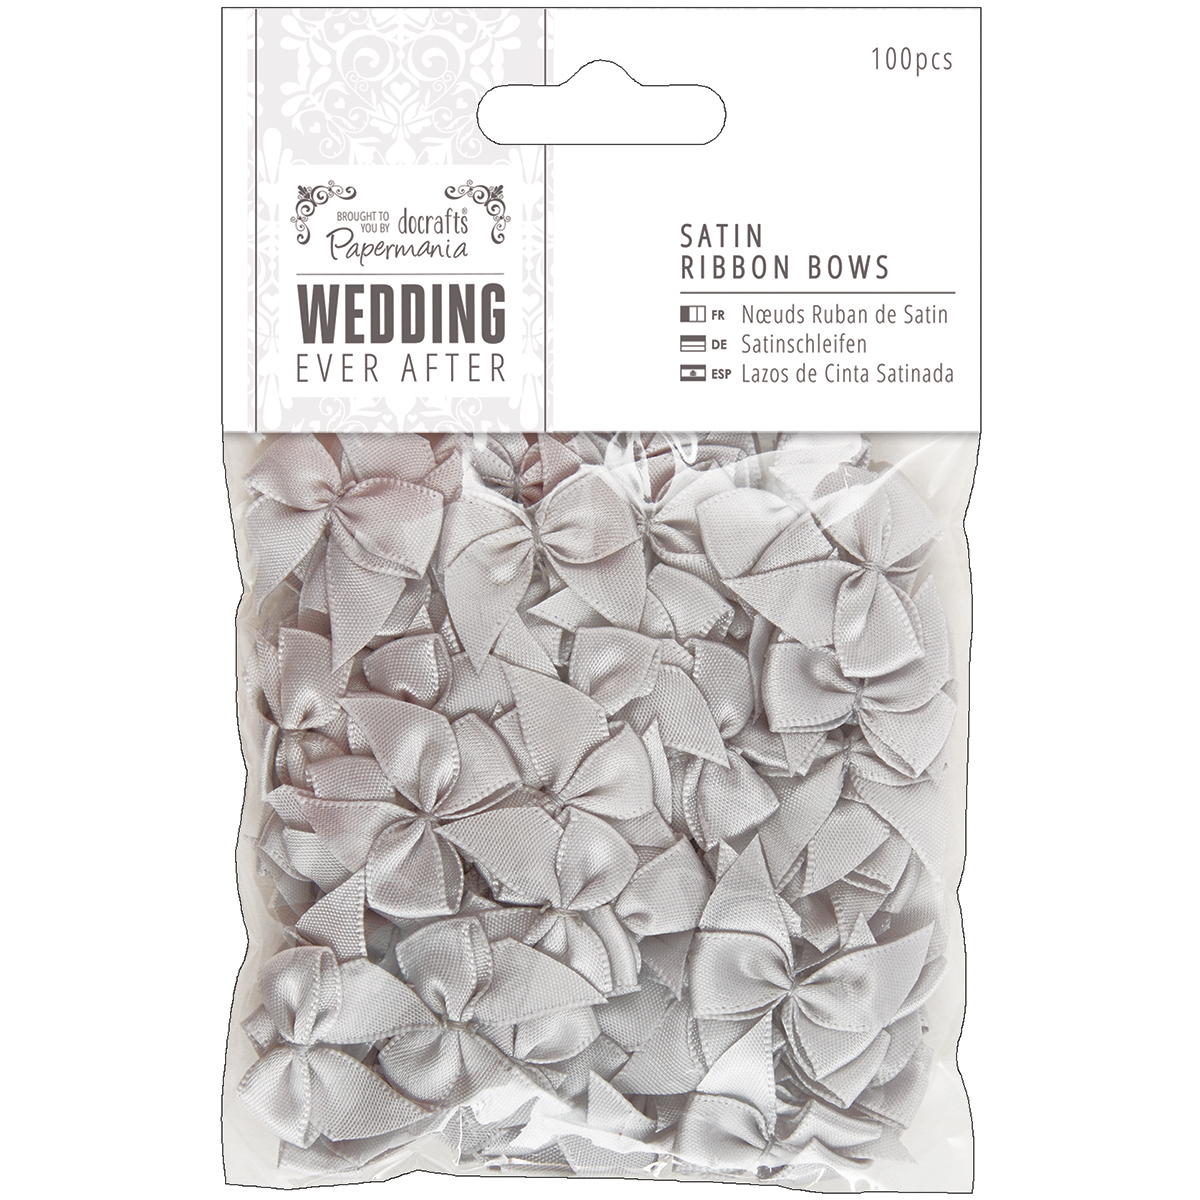 Docrafts Papermania Ever After Wedding Ribbon Bows 27mm 100//pkg-silver Satin,